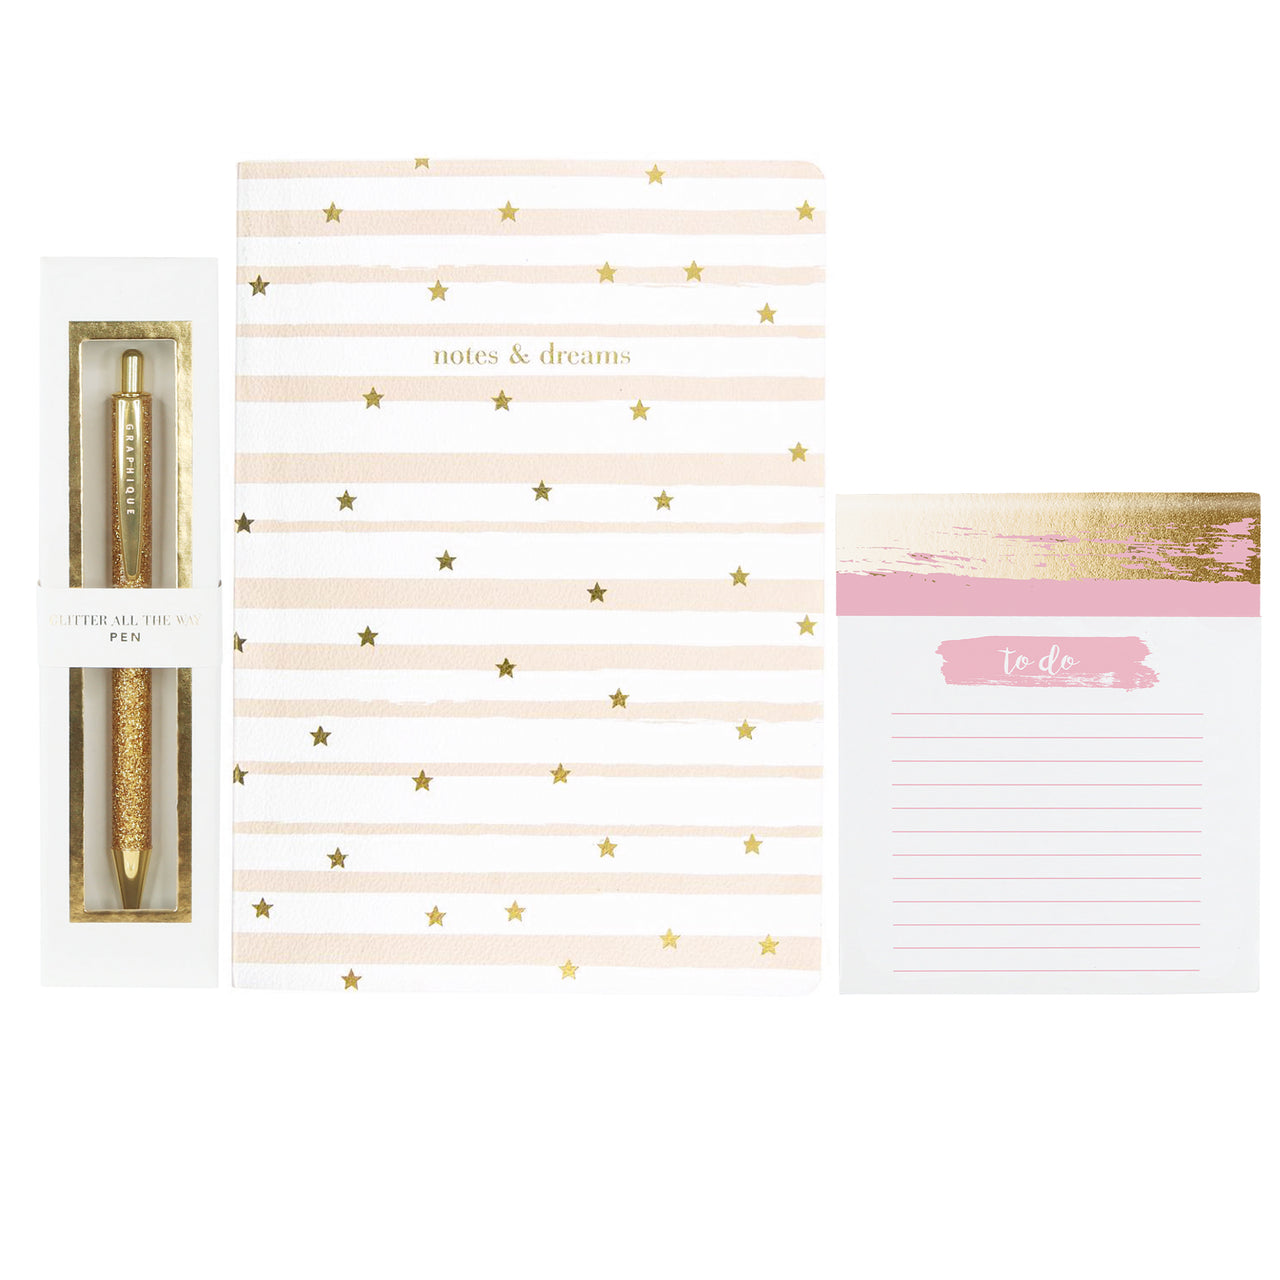 Magical Stars Stationery Set ($36.00 Value)